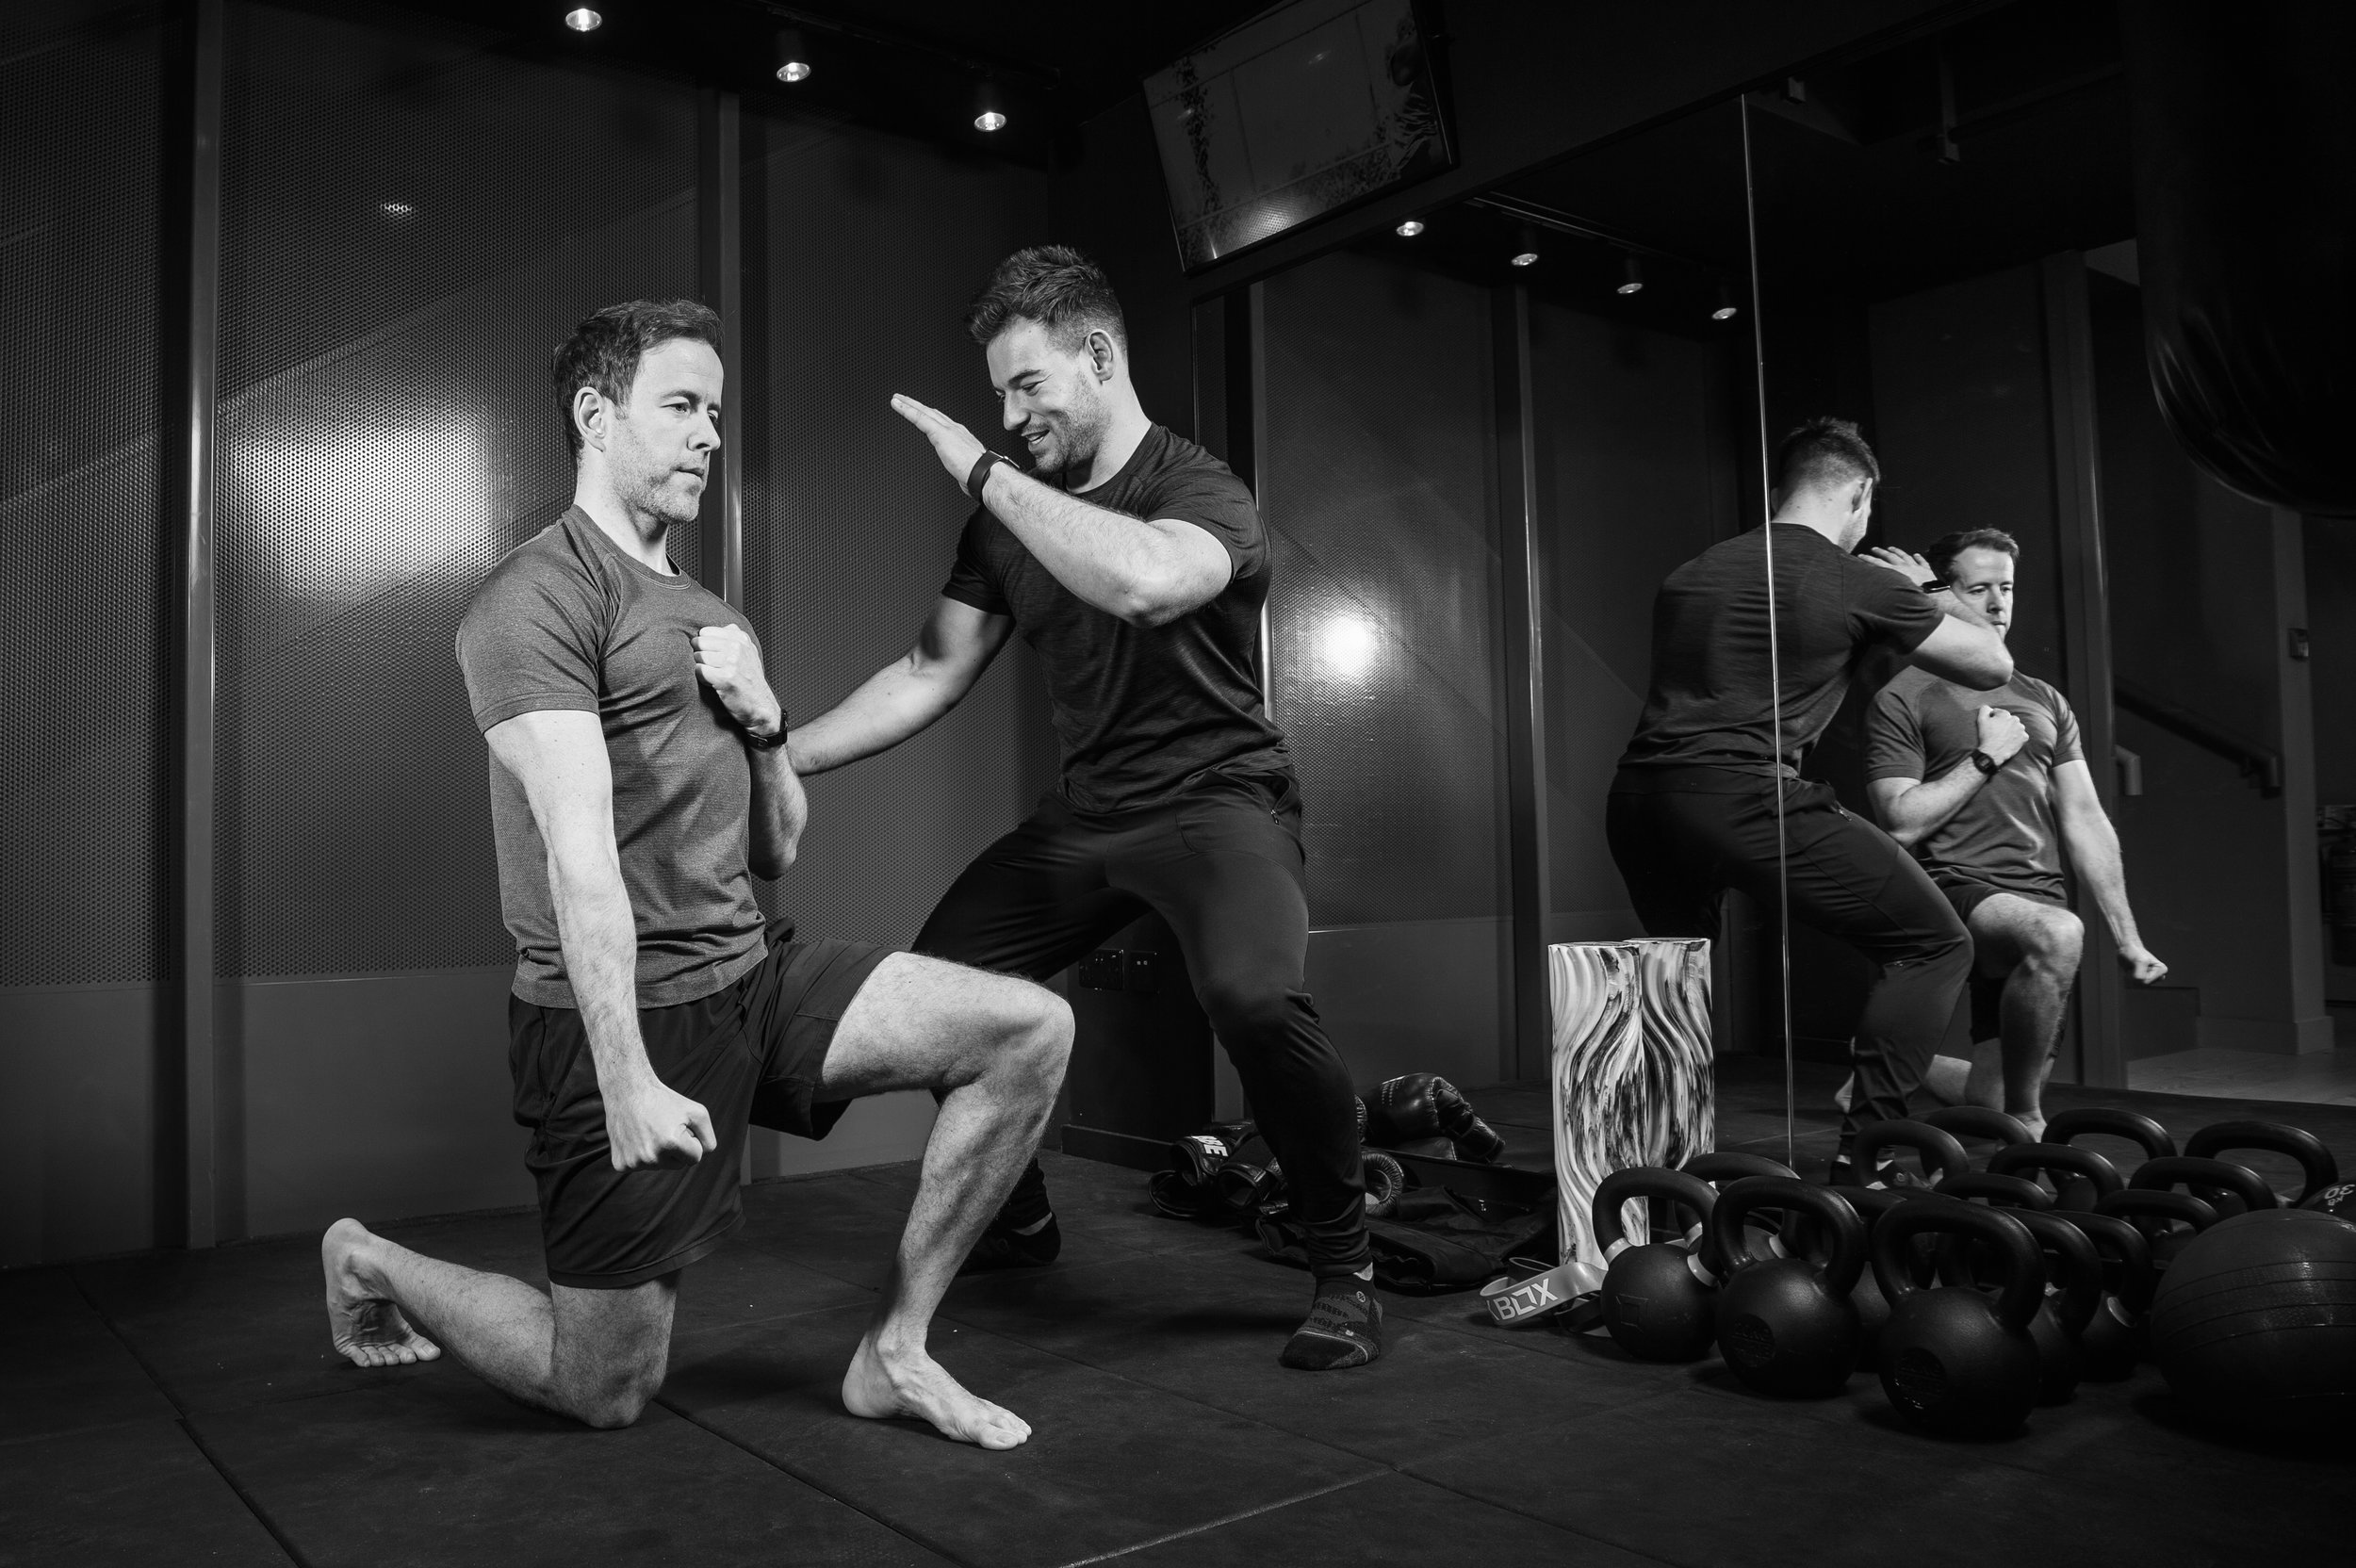 """""""Working with Harvey has redefined my perspective on fitness. His emphasis on mobility serves as a welcome deviation from the unfortunate fitness mantra cascaded all over social media where aesthetics is king and given higher priority than actual fundamentals of movement. With that being said, I have seen dramatic fat loss/muscle composition working with Harvey, but it has been a process which was laid on a foundation of proper technique and mobility. Having been born with erbs palsy (injury to the upper group of nerves) on my left arm, my range of motion has always been limited. Harv has worked with me on this limitation and I am now doing things I never thought I could do (deadlifts, back squats) and as I write this my arms are so sore because today I was able to do my first overhead press after months of targeted mobility work. I could not recommend Harv enough."""" - DANIEL KHAN - CLIENT TESTIMONIAL"""